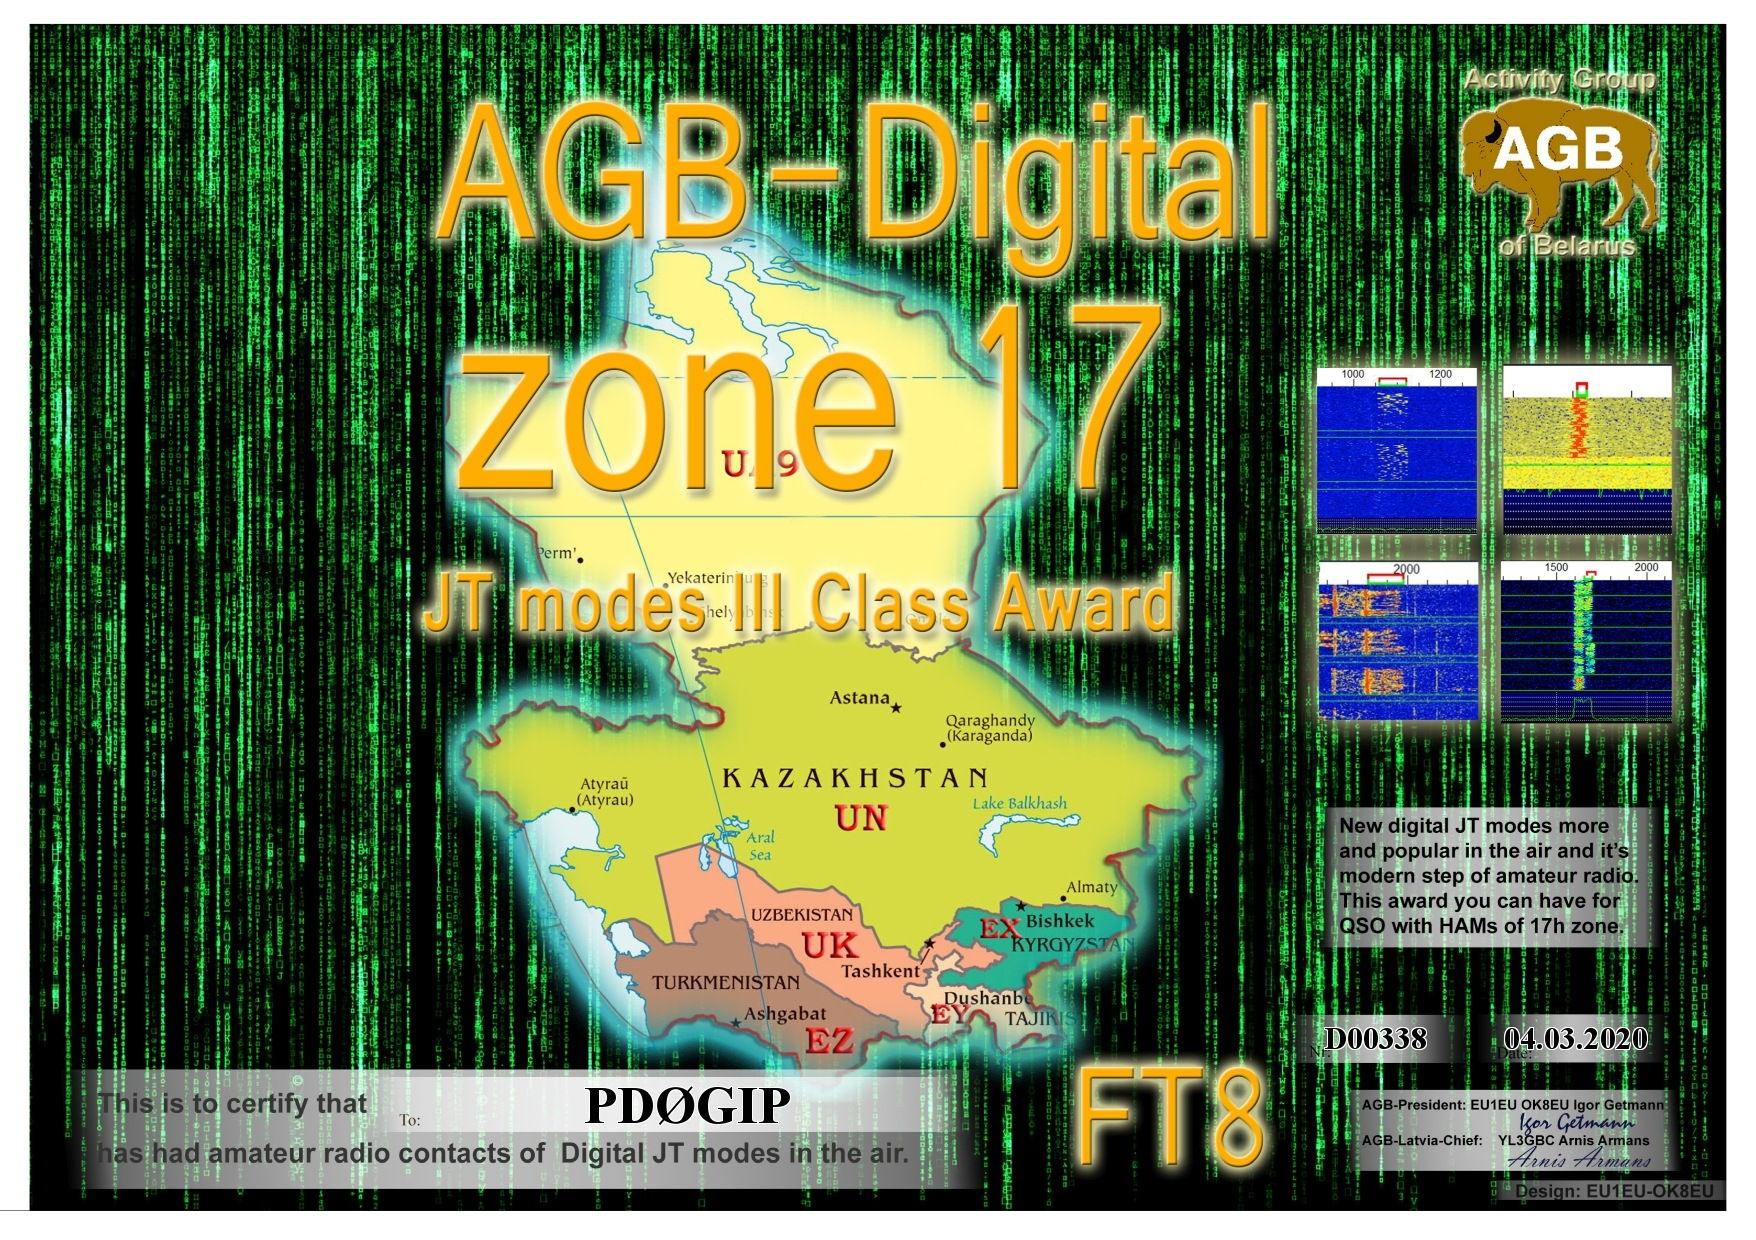 PD0GIP ZONE17 FT8 III AGB